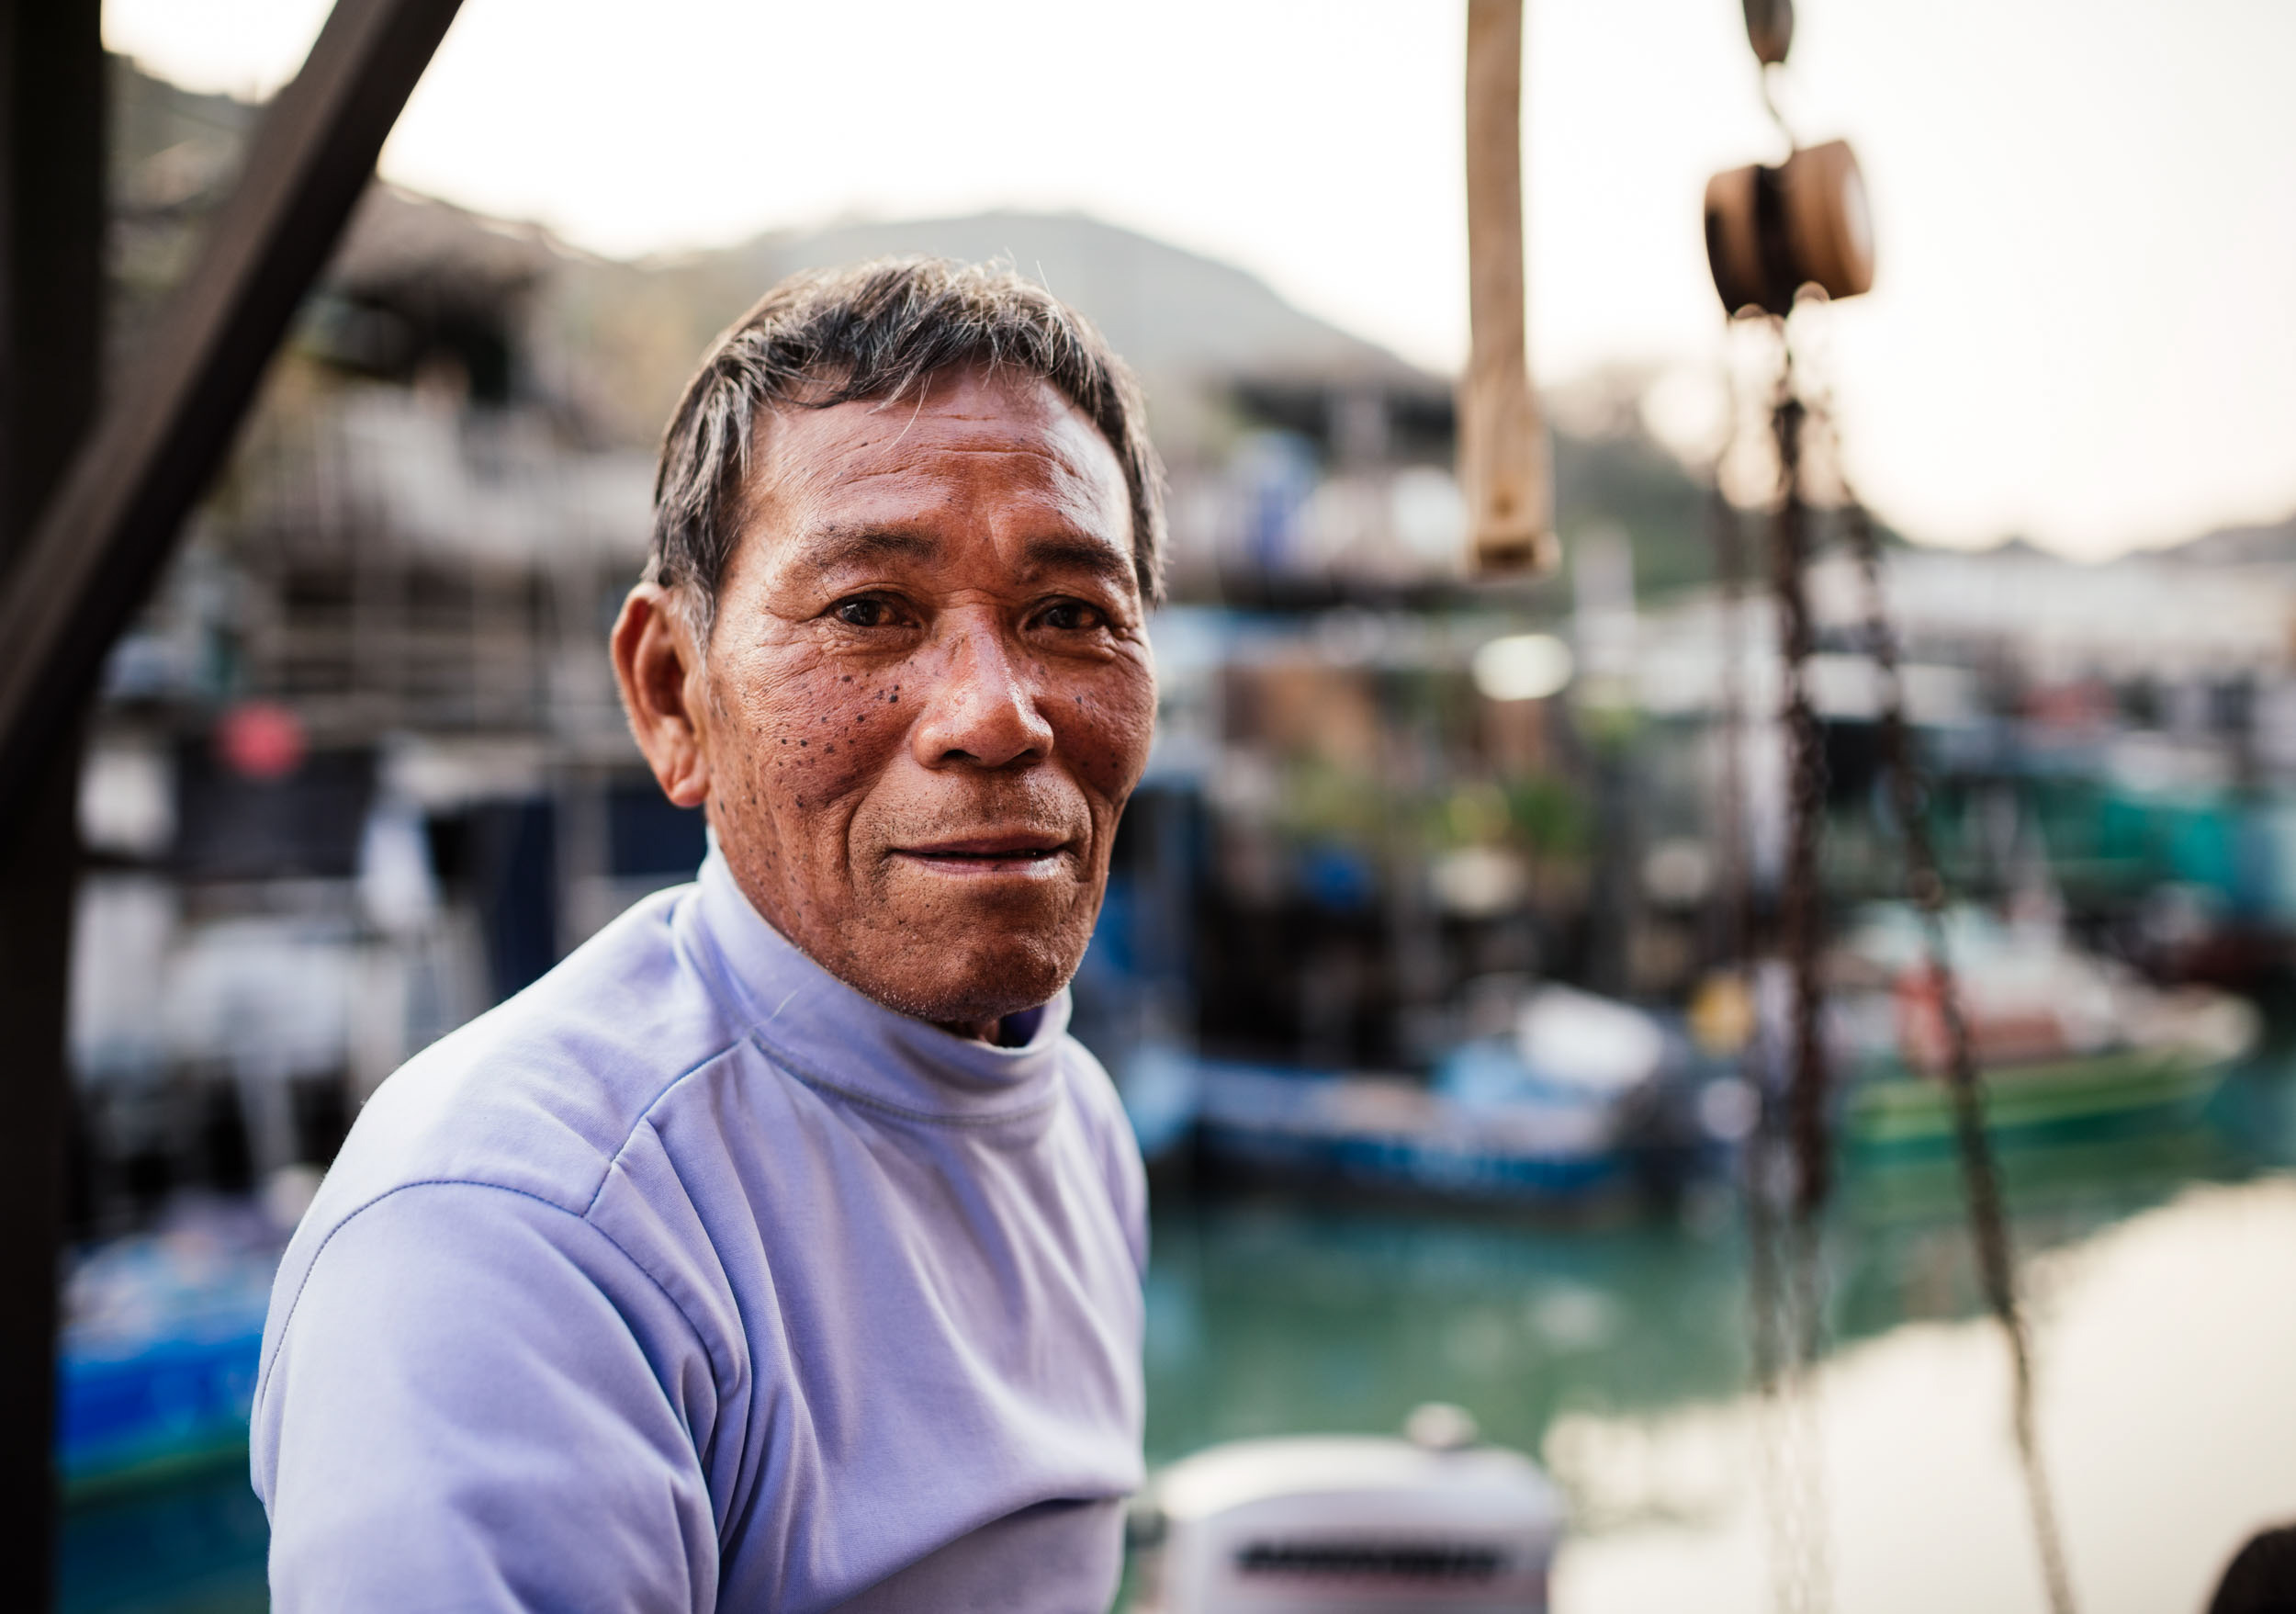 portrait-fisherman-male-looking-at-camera-tai-o-village-hong-kong-china